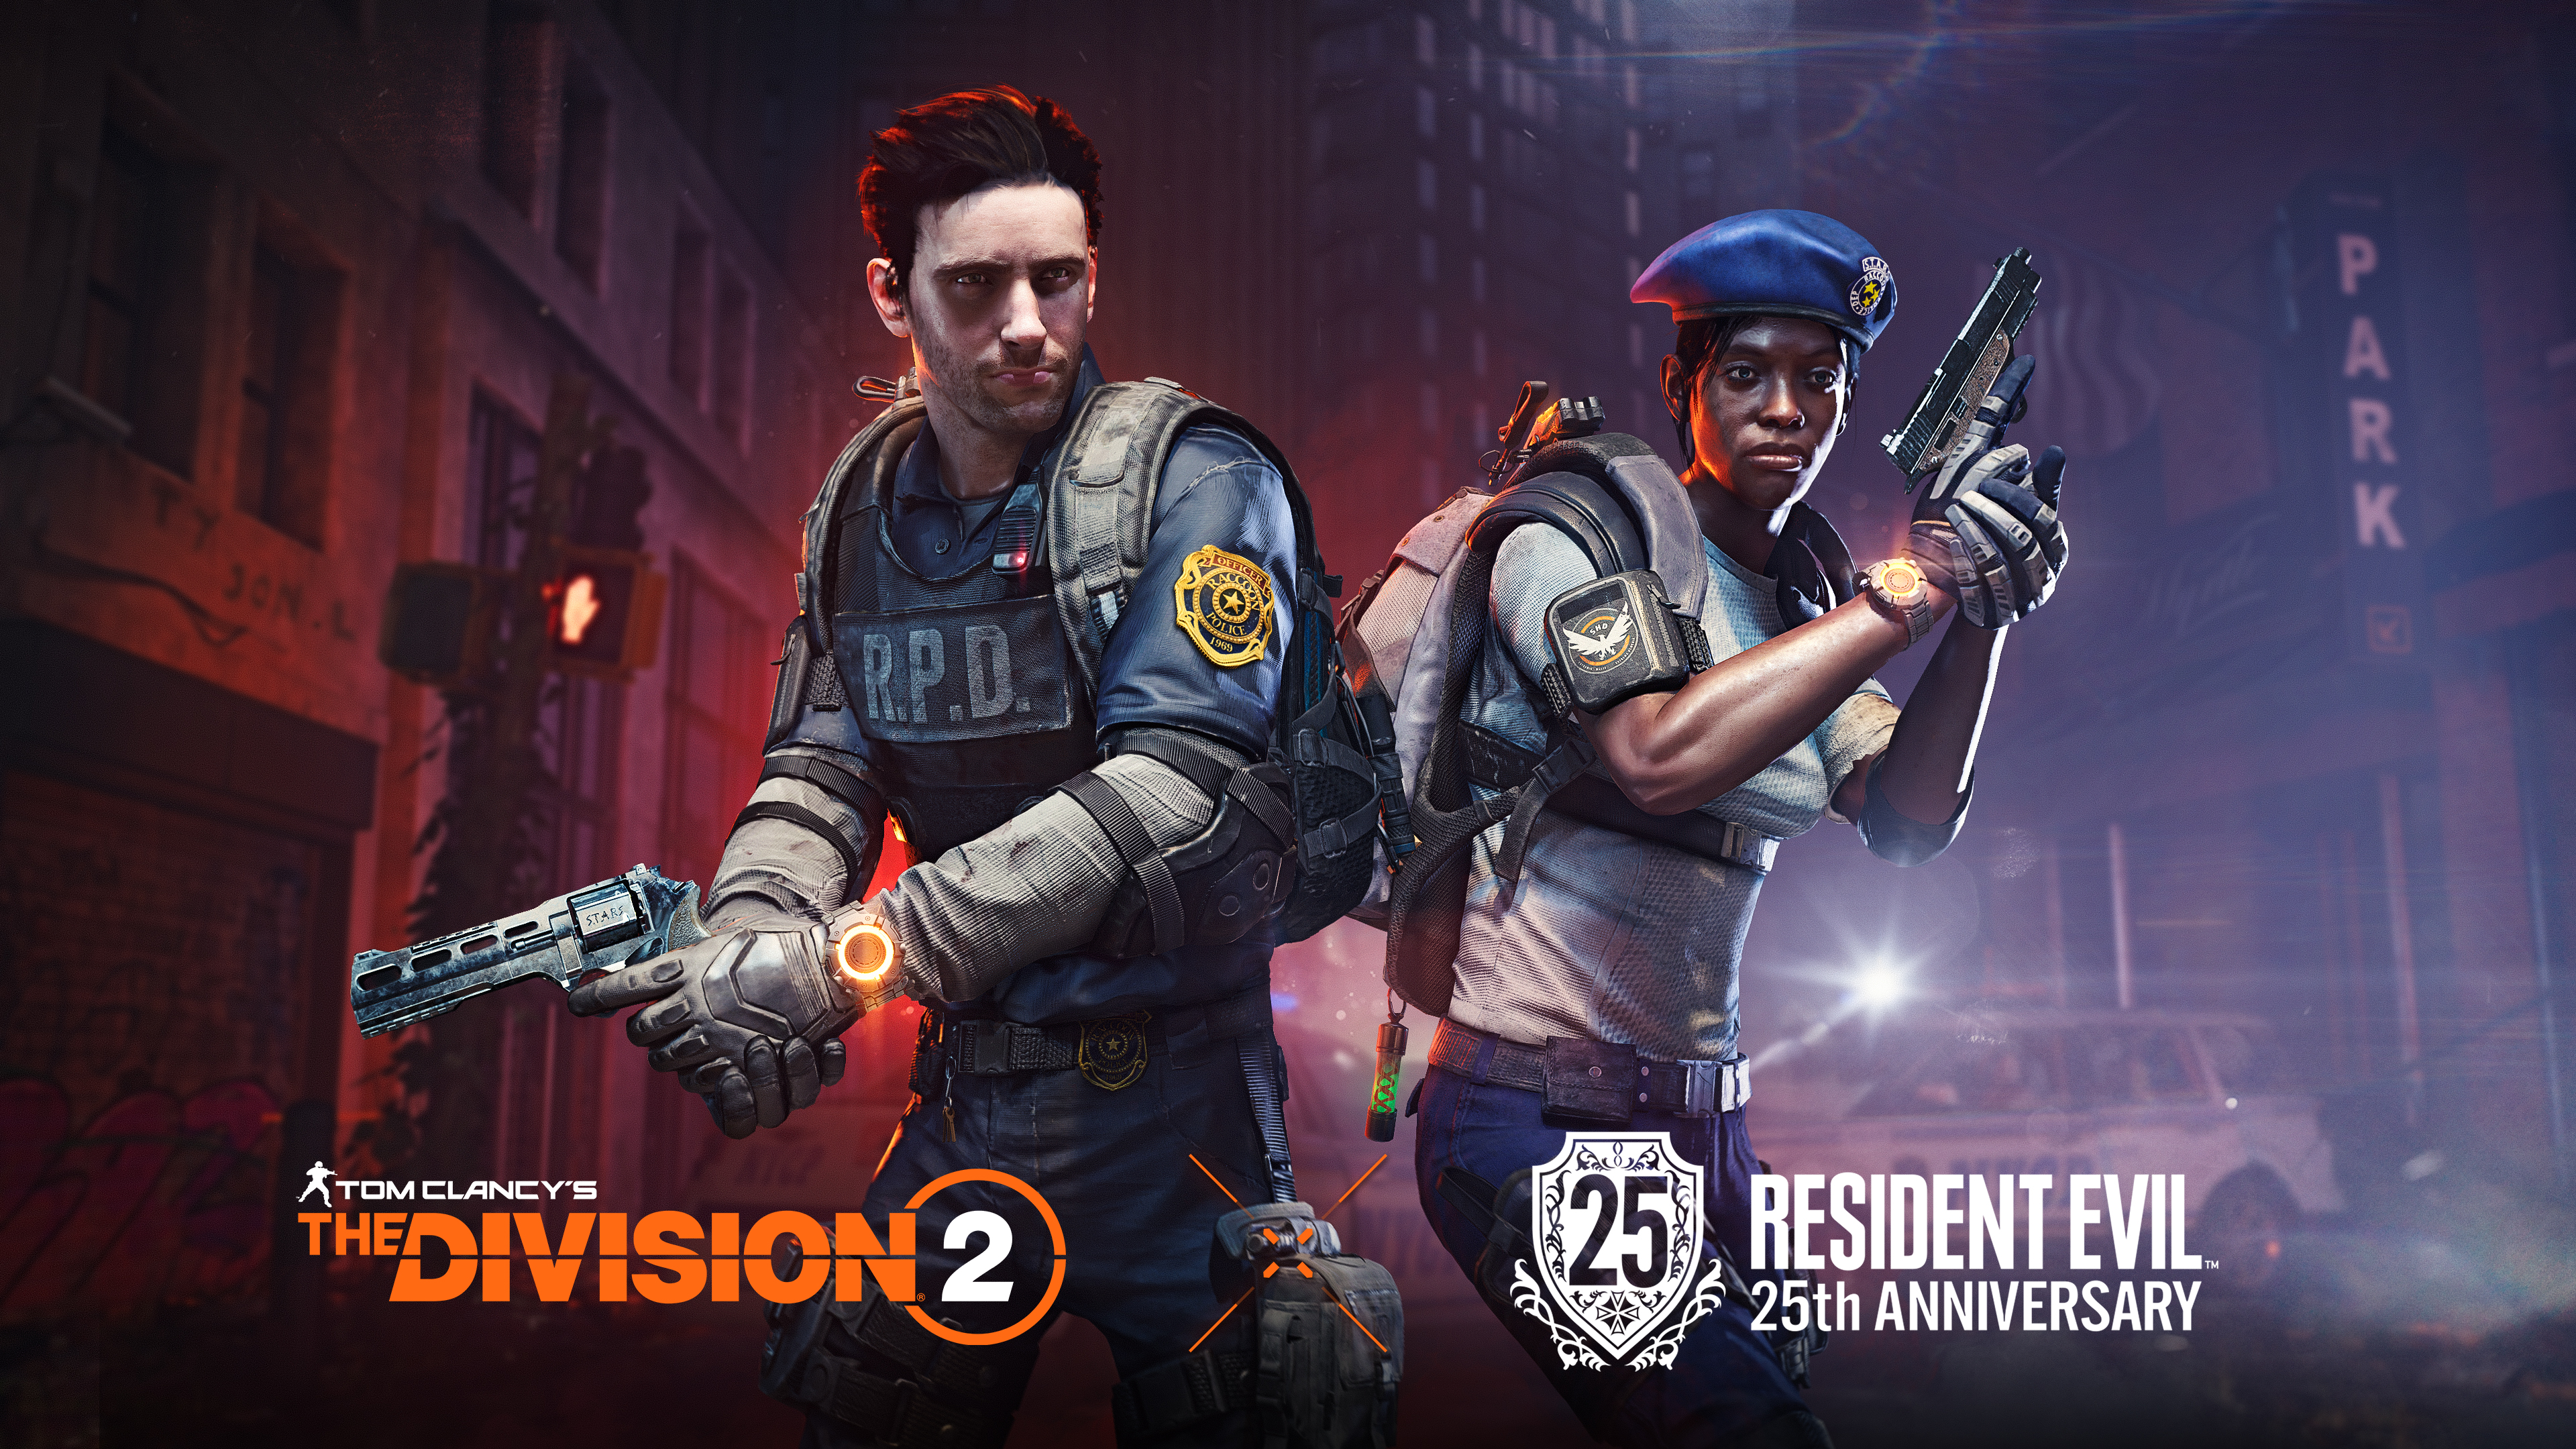 Division 2 ps5 RE event